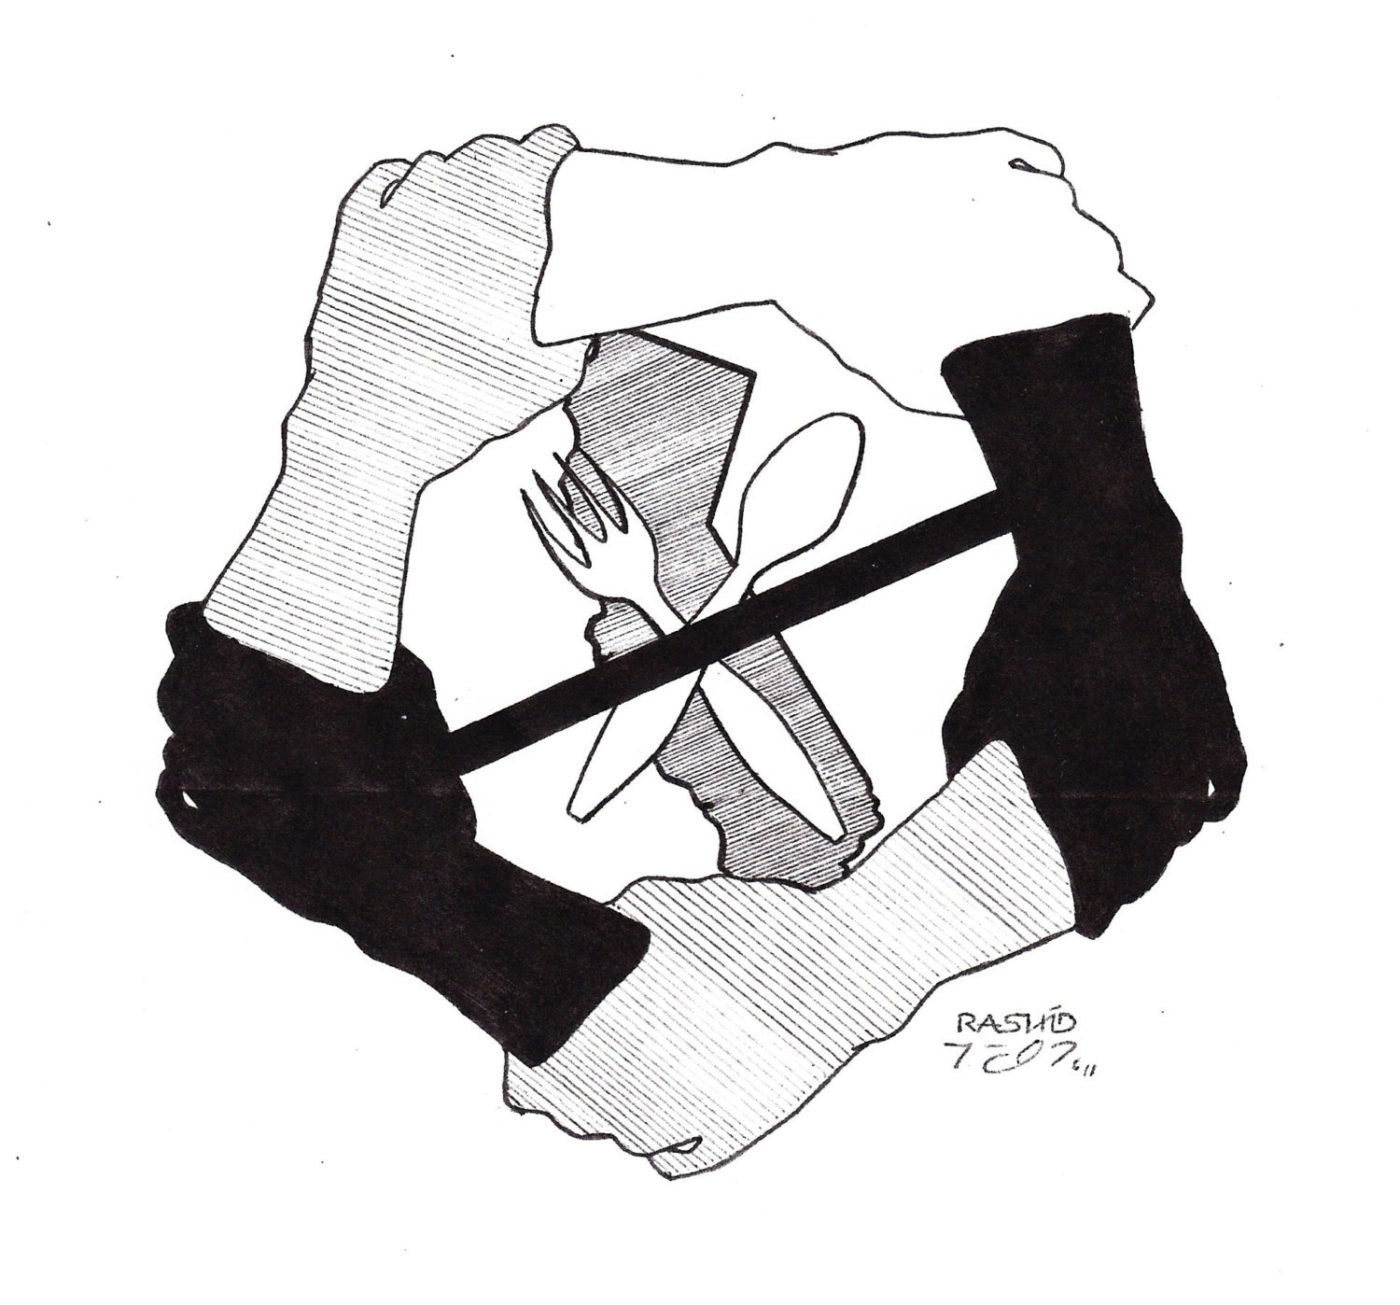 California-hunger-strike-logo-art-by-Rashid-2011-1400x1305, Liberate the Caged Voices, Behind Enemy Lines